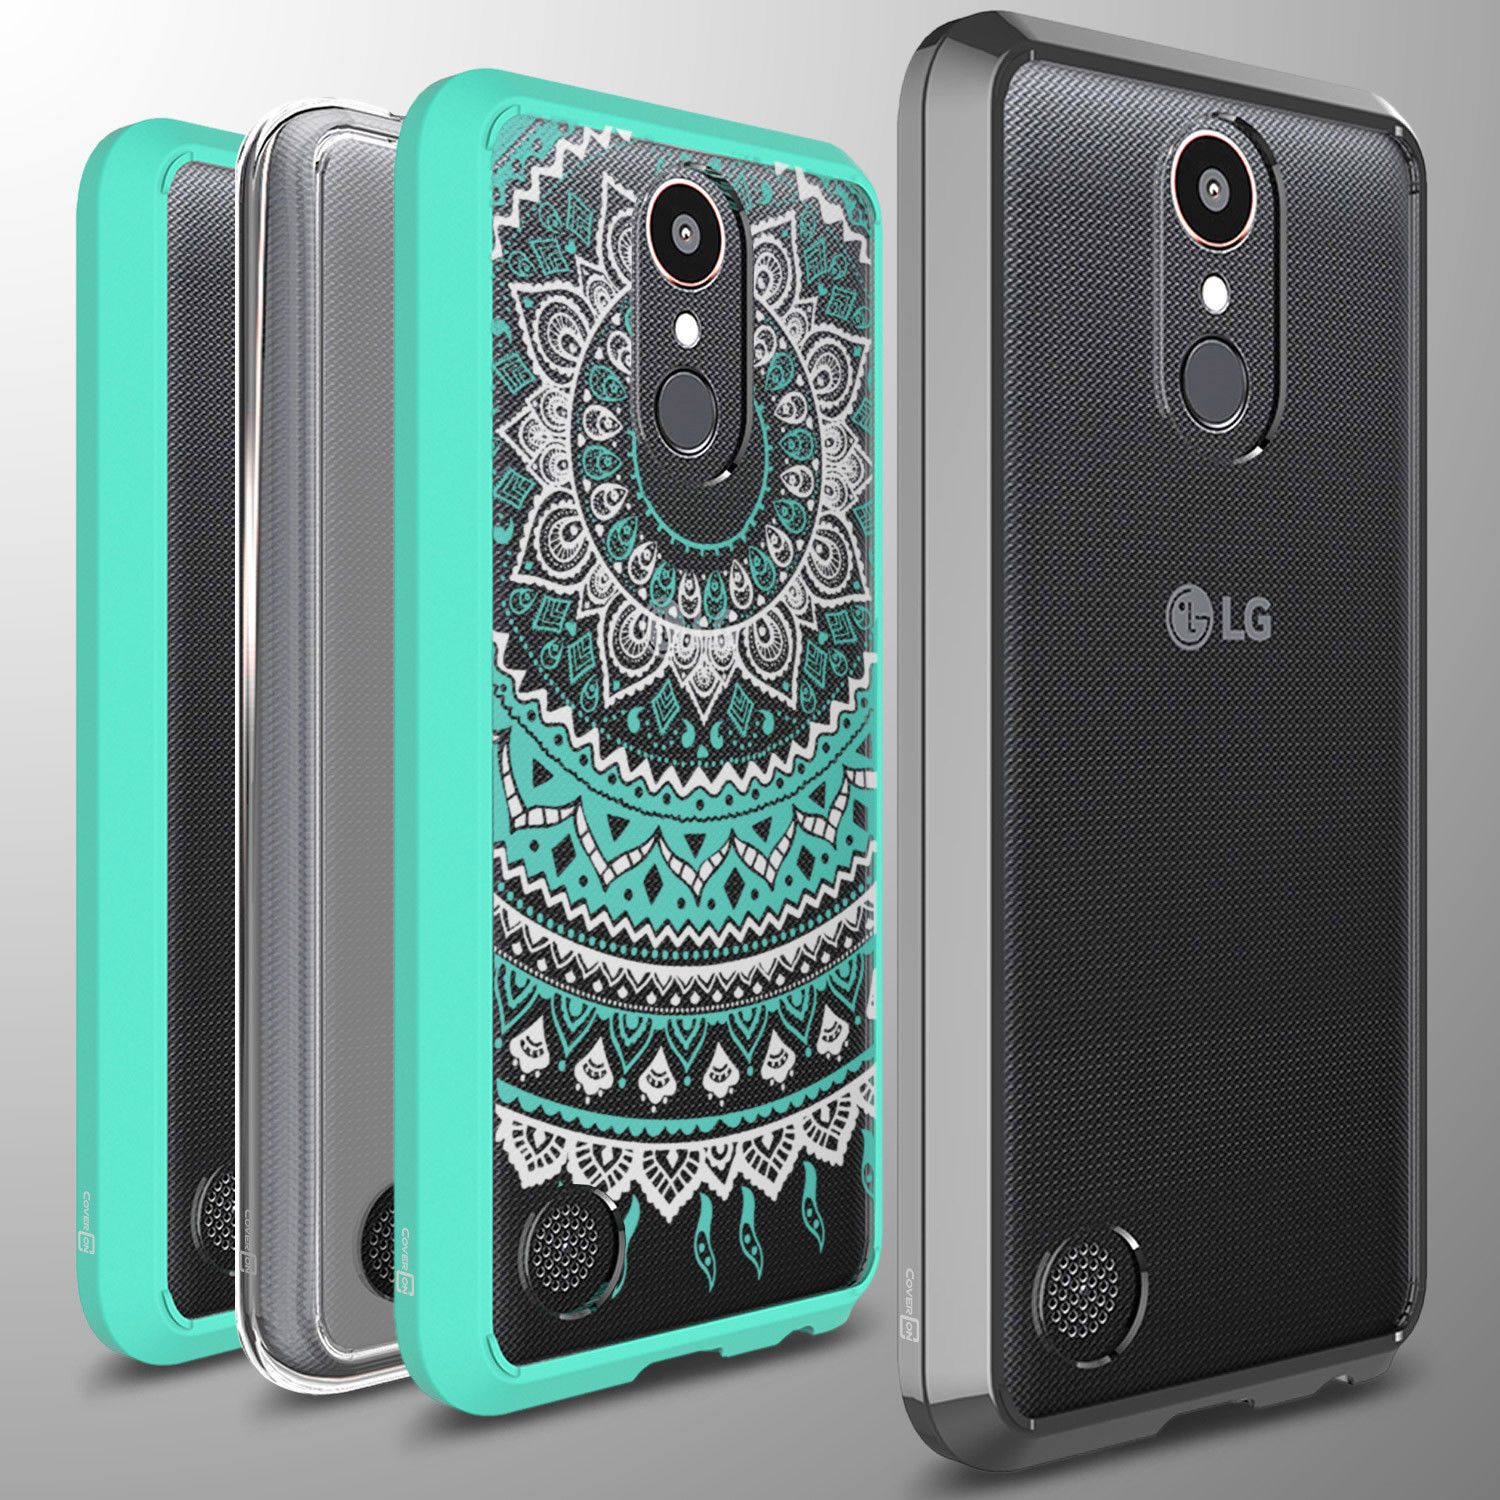 new arrivals e4bc6 d7c53 For Lg K20 Plus / K20 V / K20V Case Hard Back Bumper Slim Phone ...